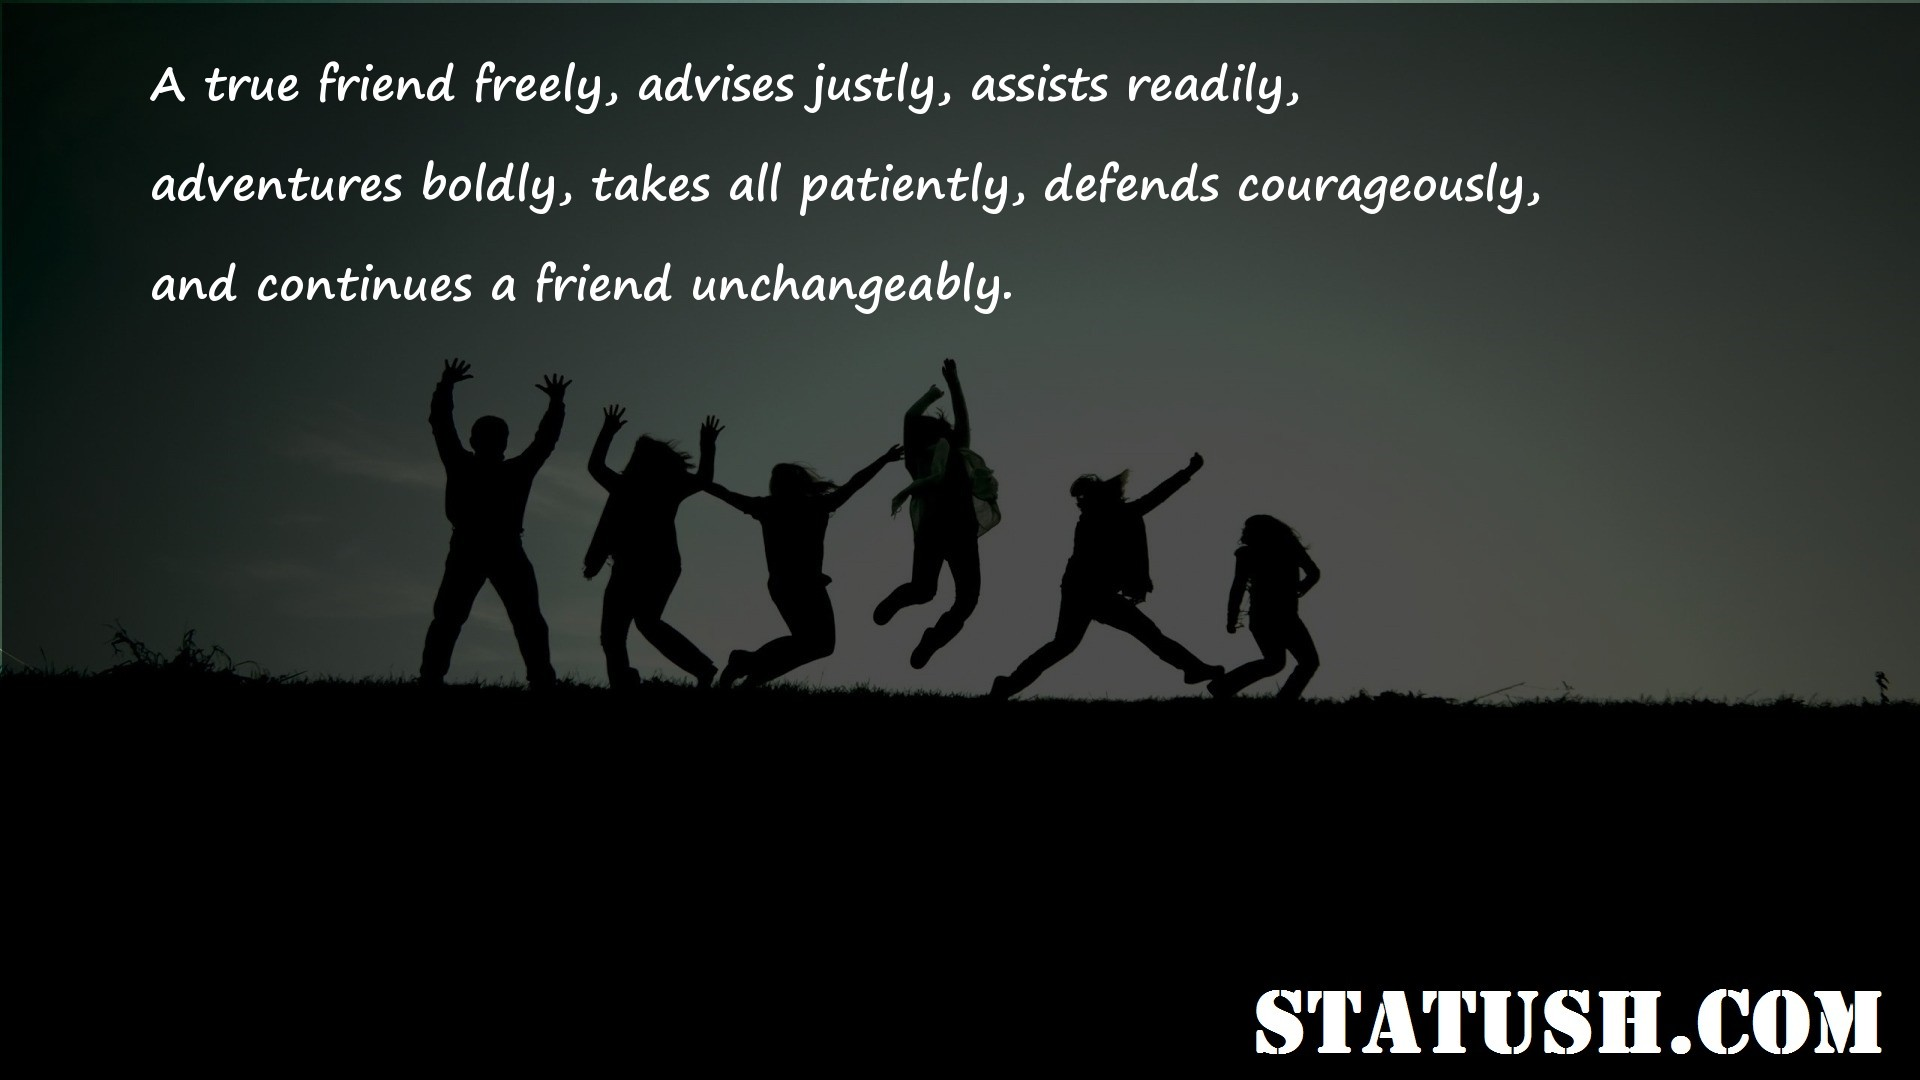 A true friend freely advises justly assists readily